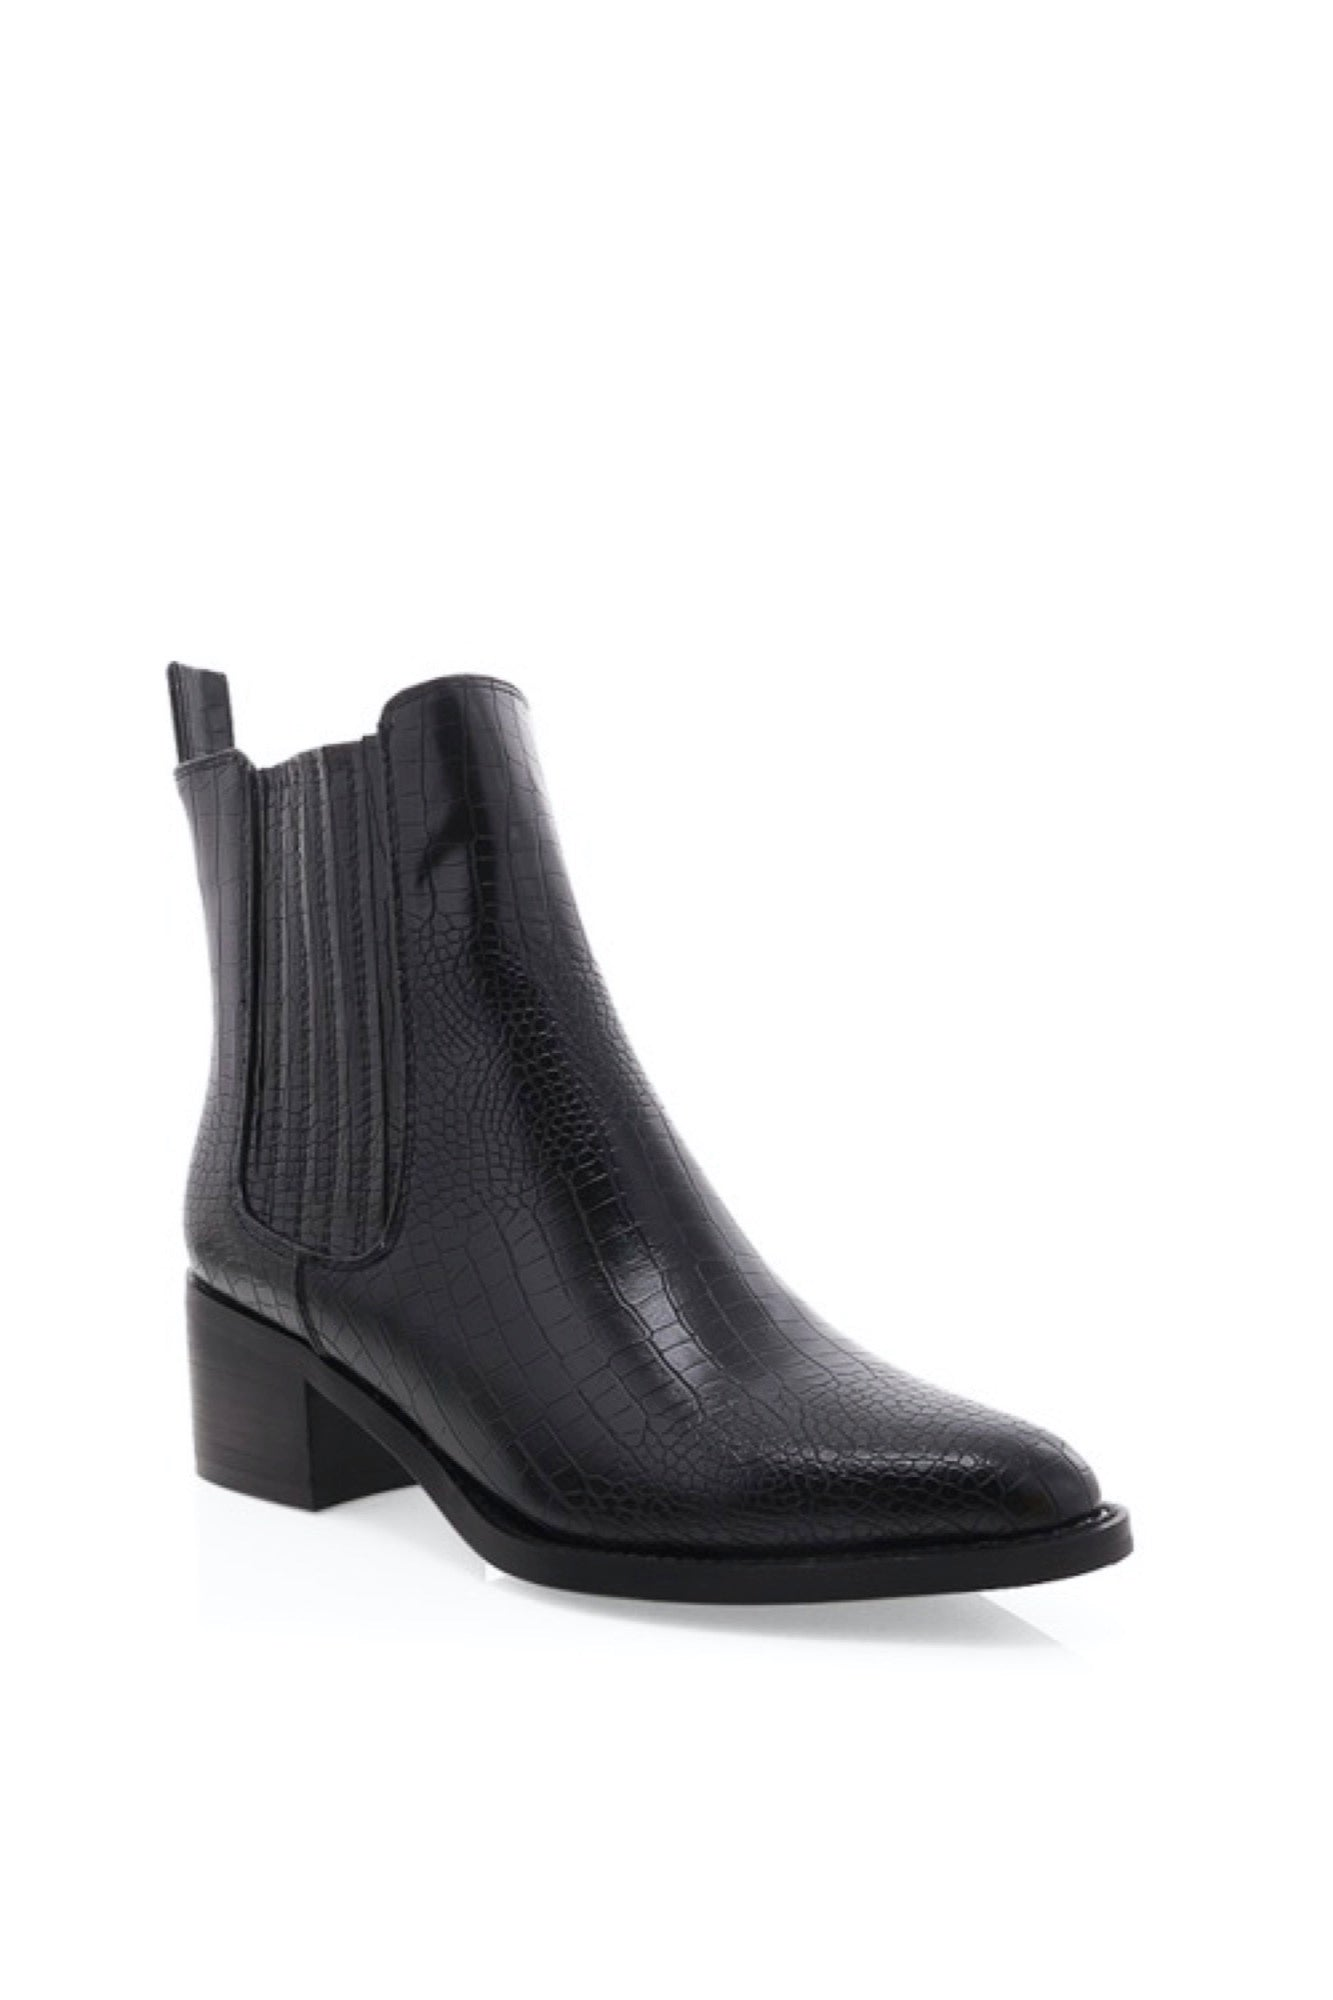 Eamon Boot - Black Croc